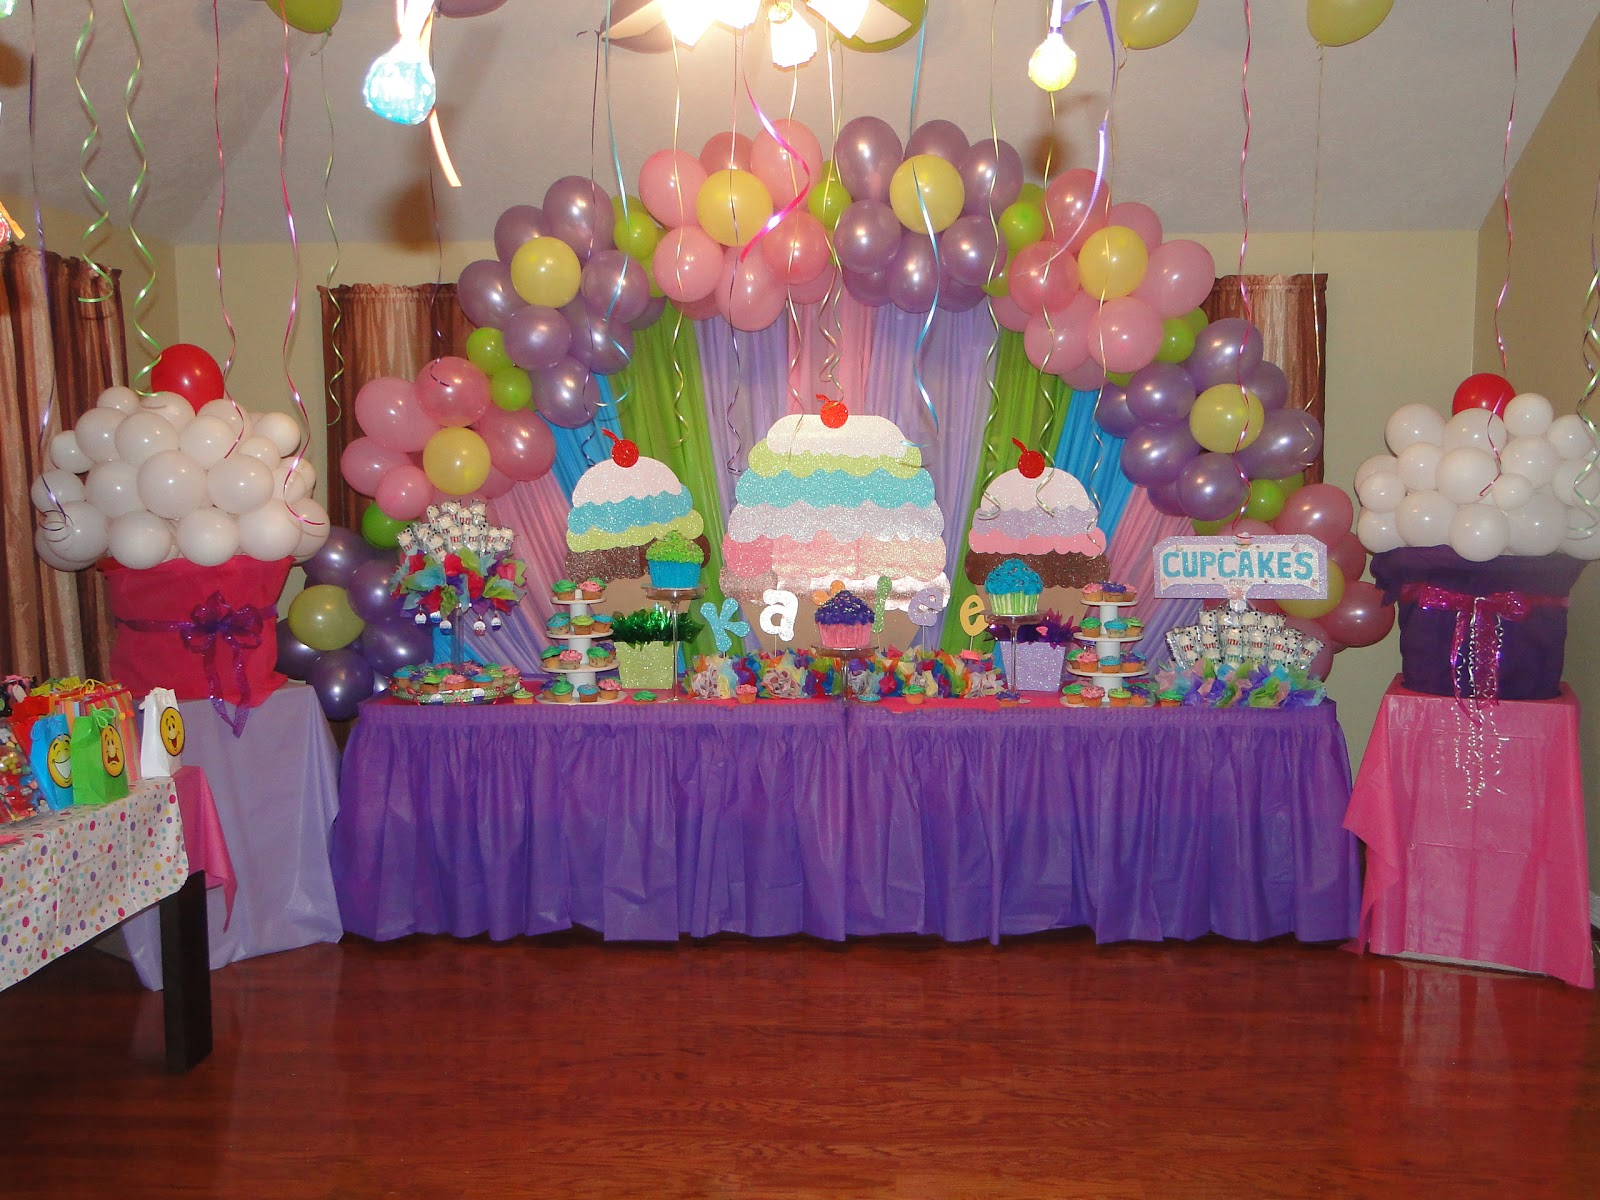 ... Creations Designed by Maria: CUPCAKE THEMED BIRTHDAY PARTY